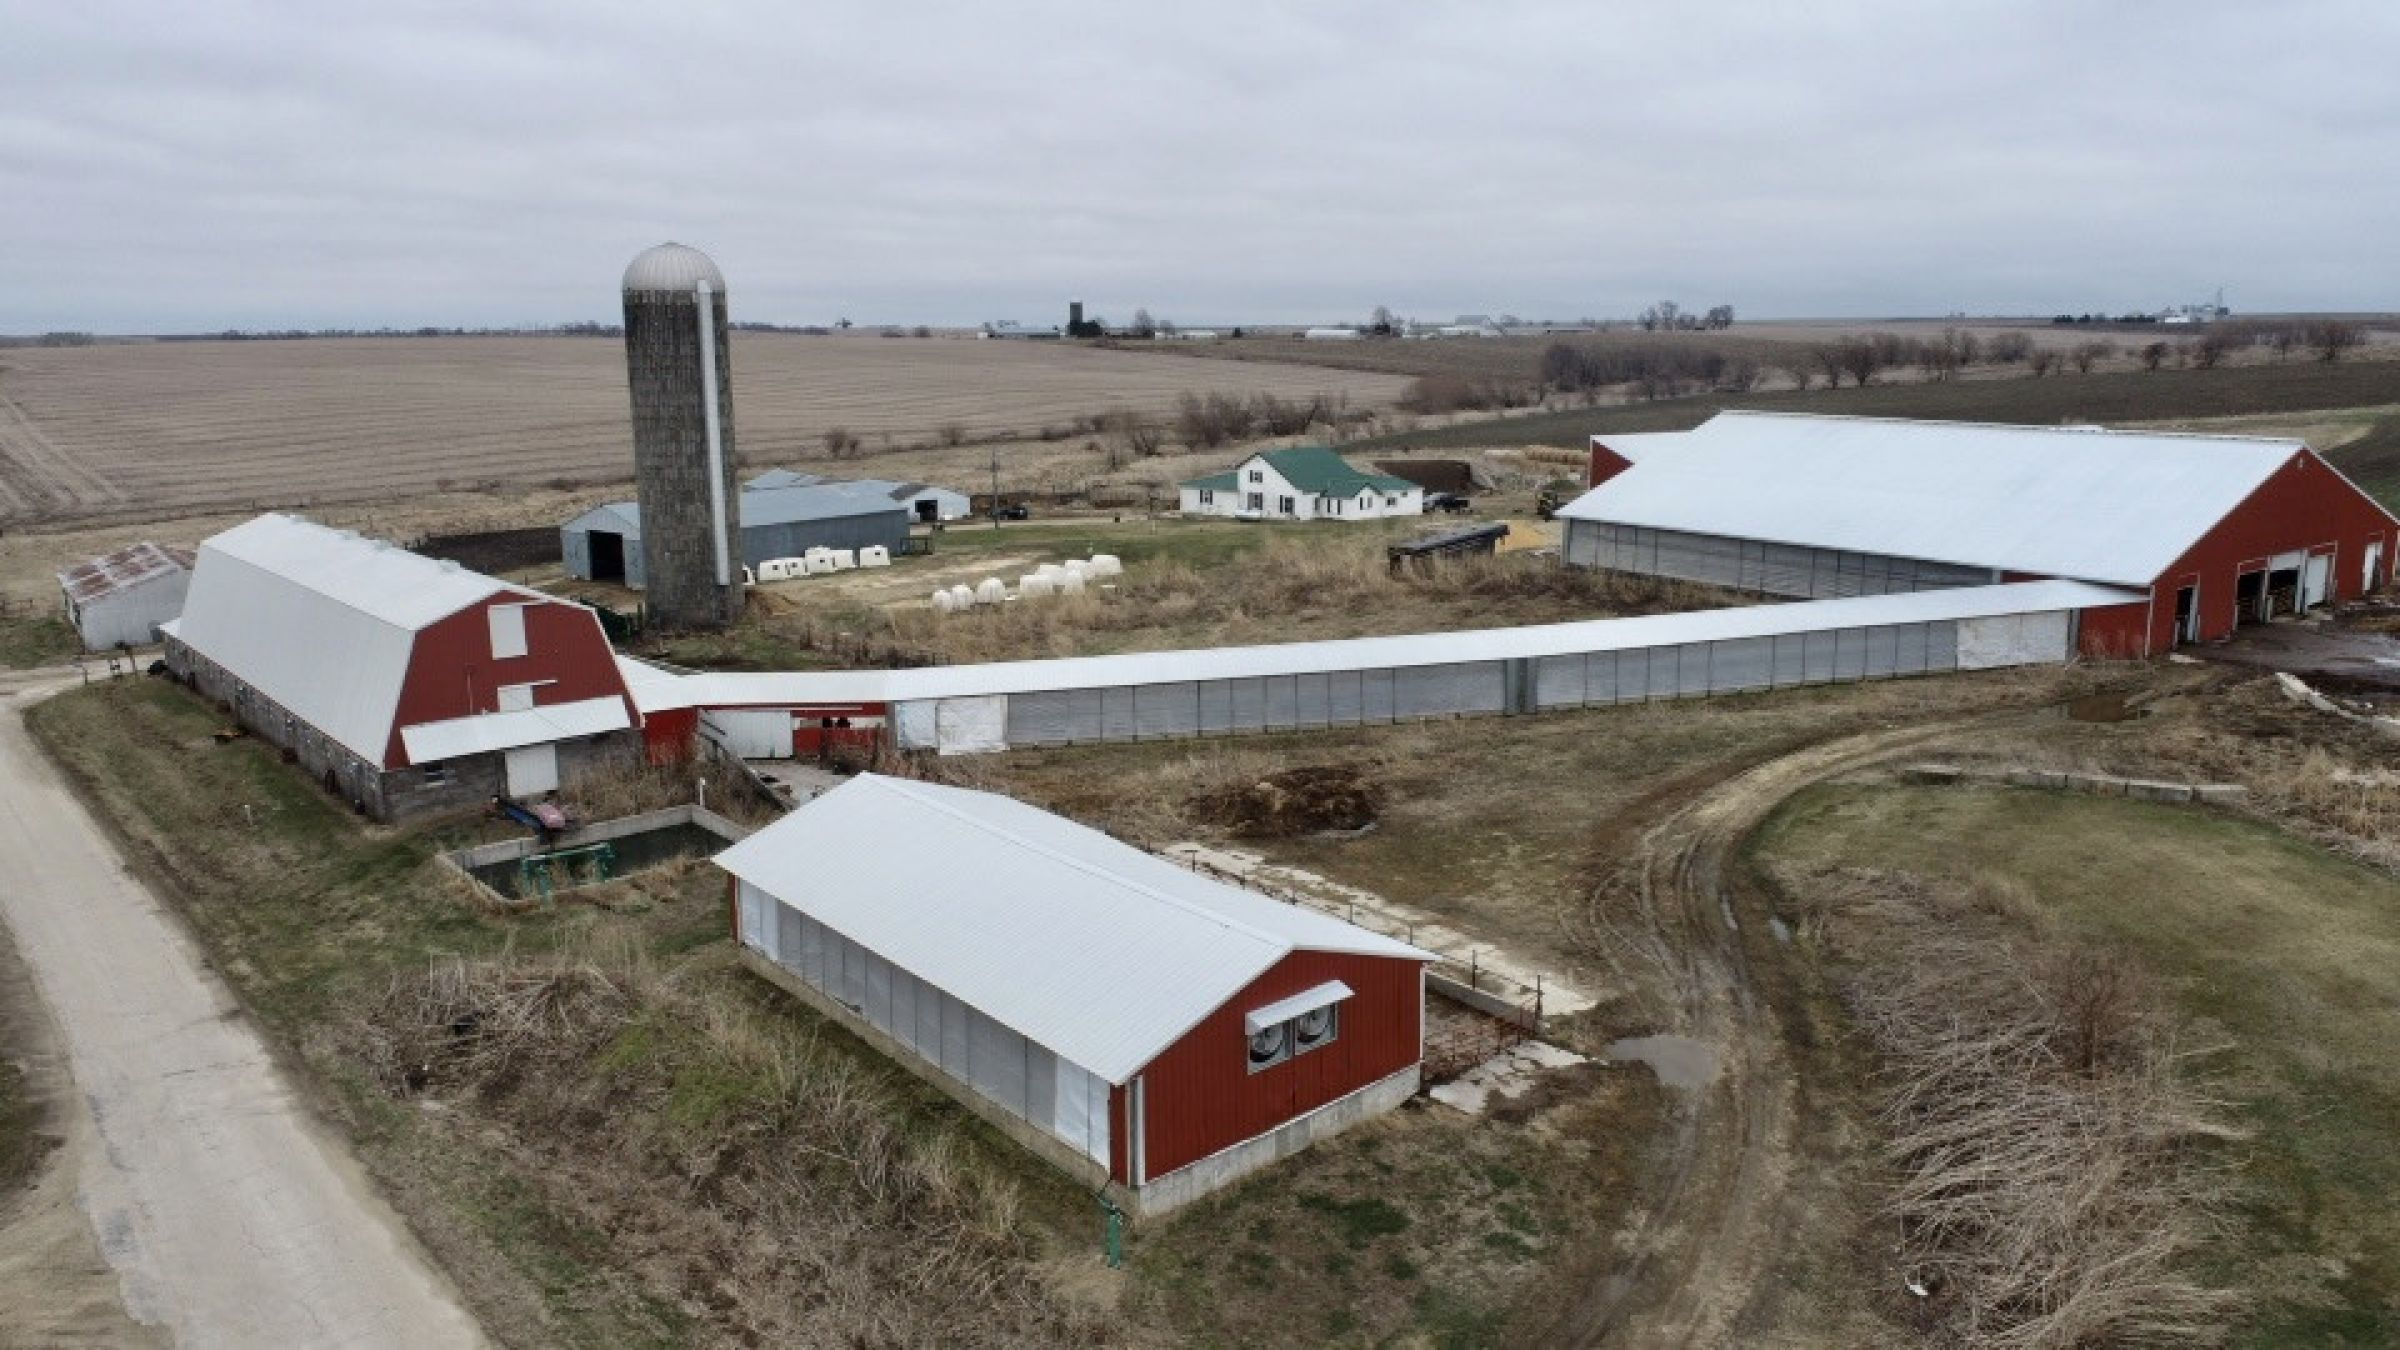 land-lafayette-county-wisconsin-47-acres-listing-number-15428-8-2021-03-25-172100.jpg